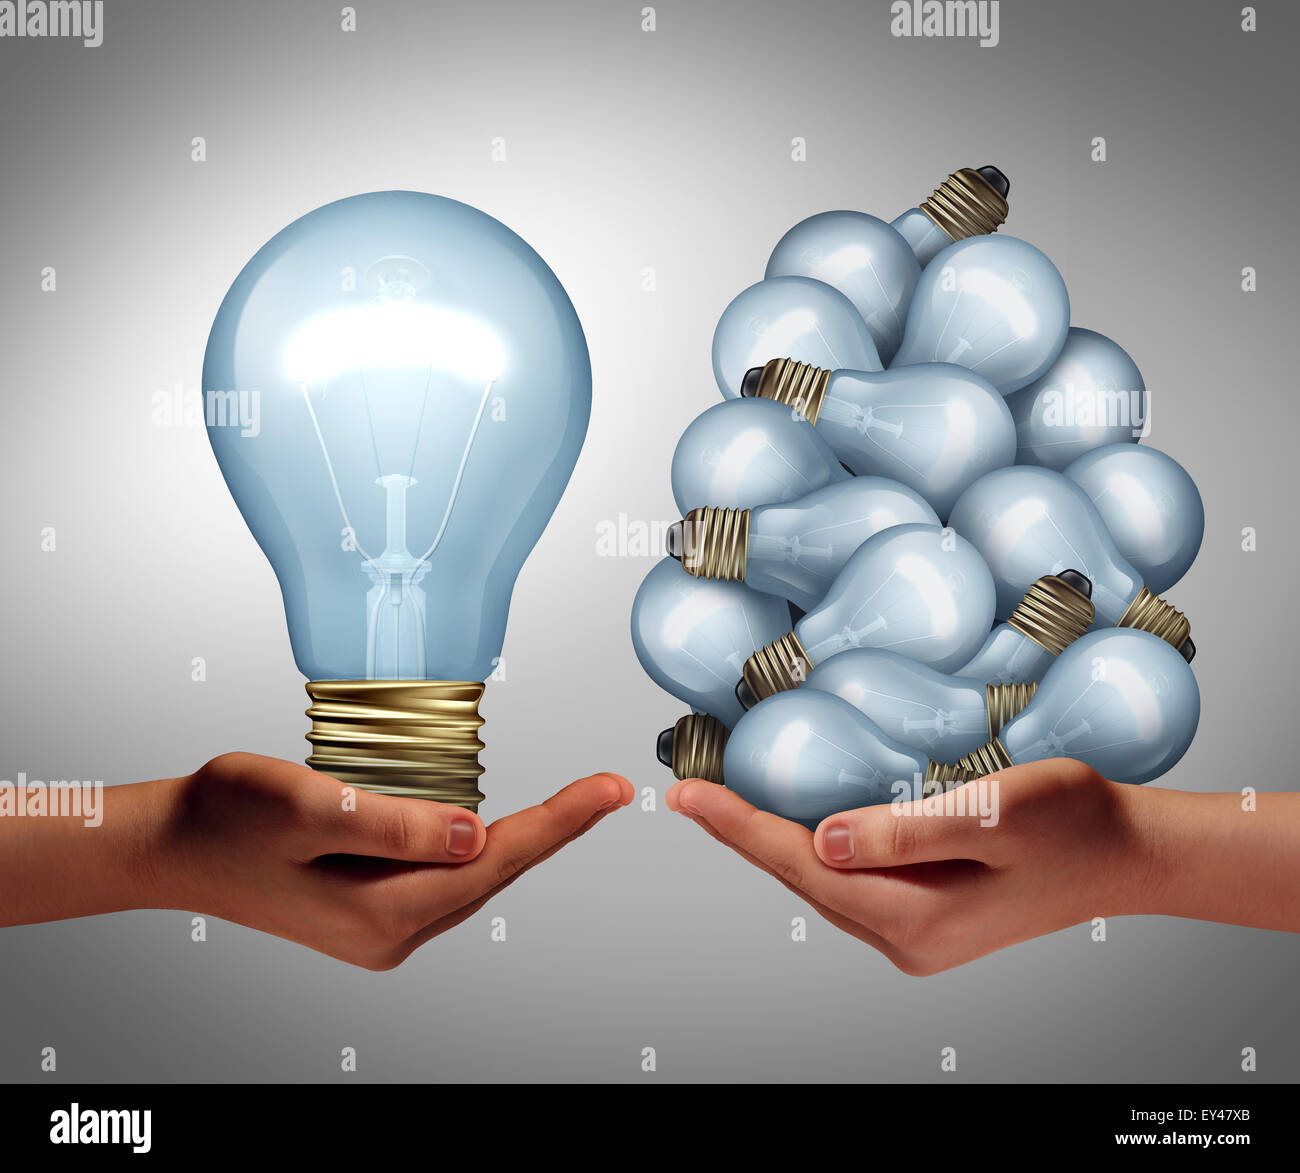 Big idea concept as a hand holding a large lightbulb and another holding a group of small bulbs as a symbol for - Stock Image